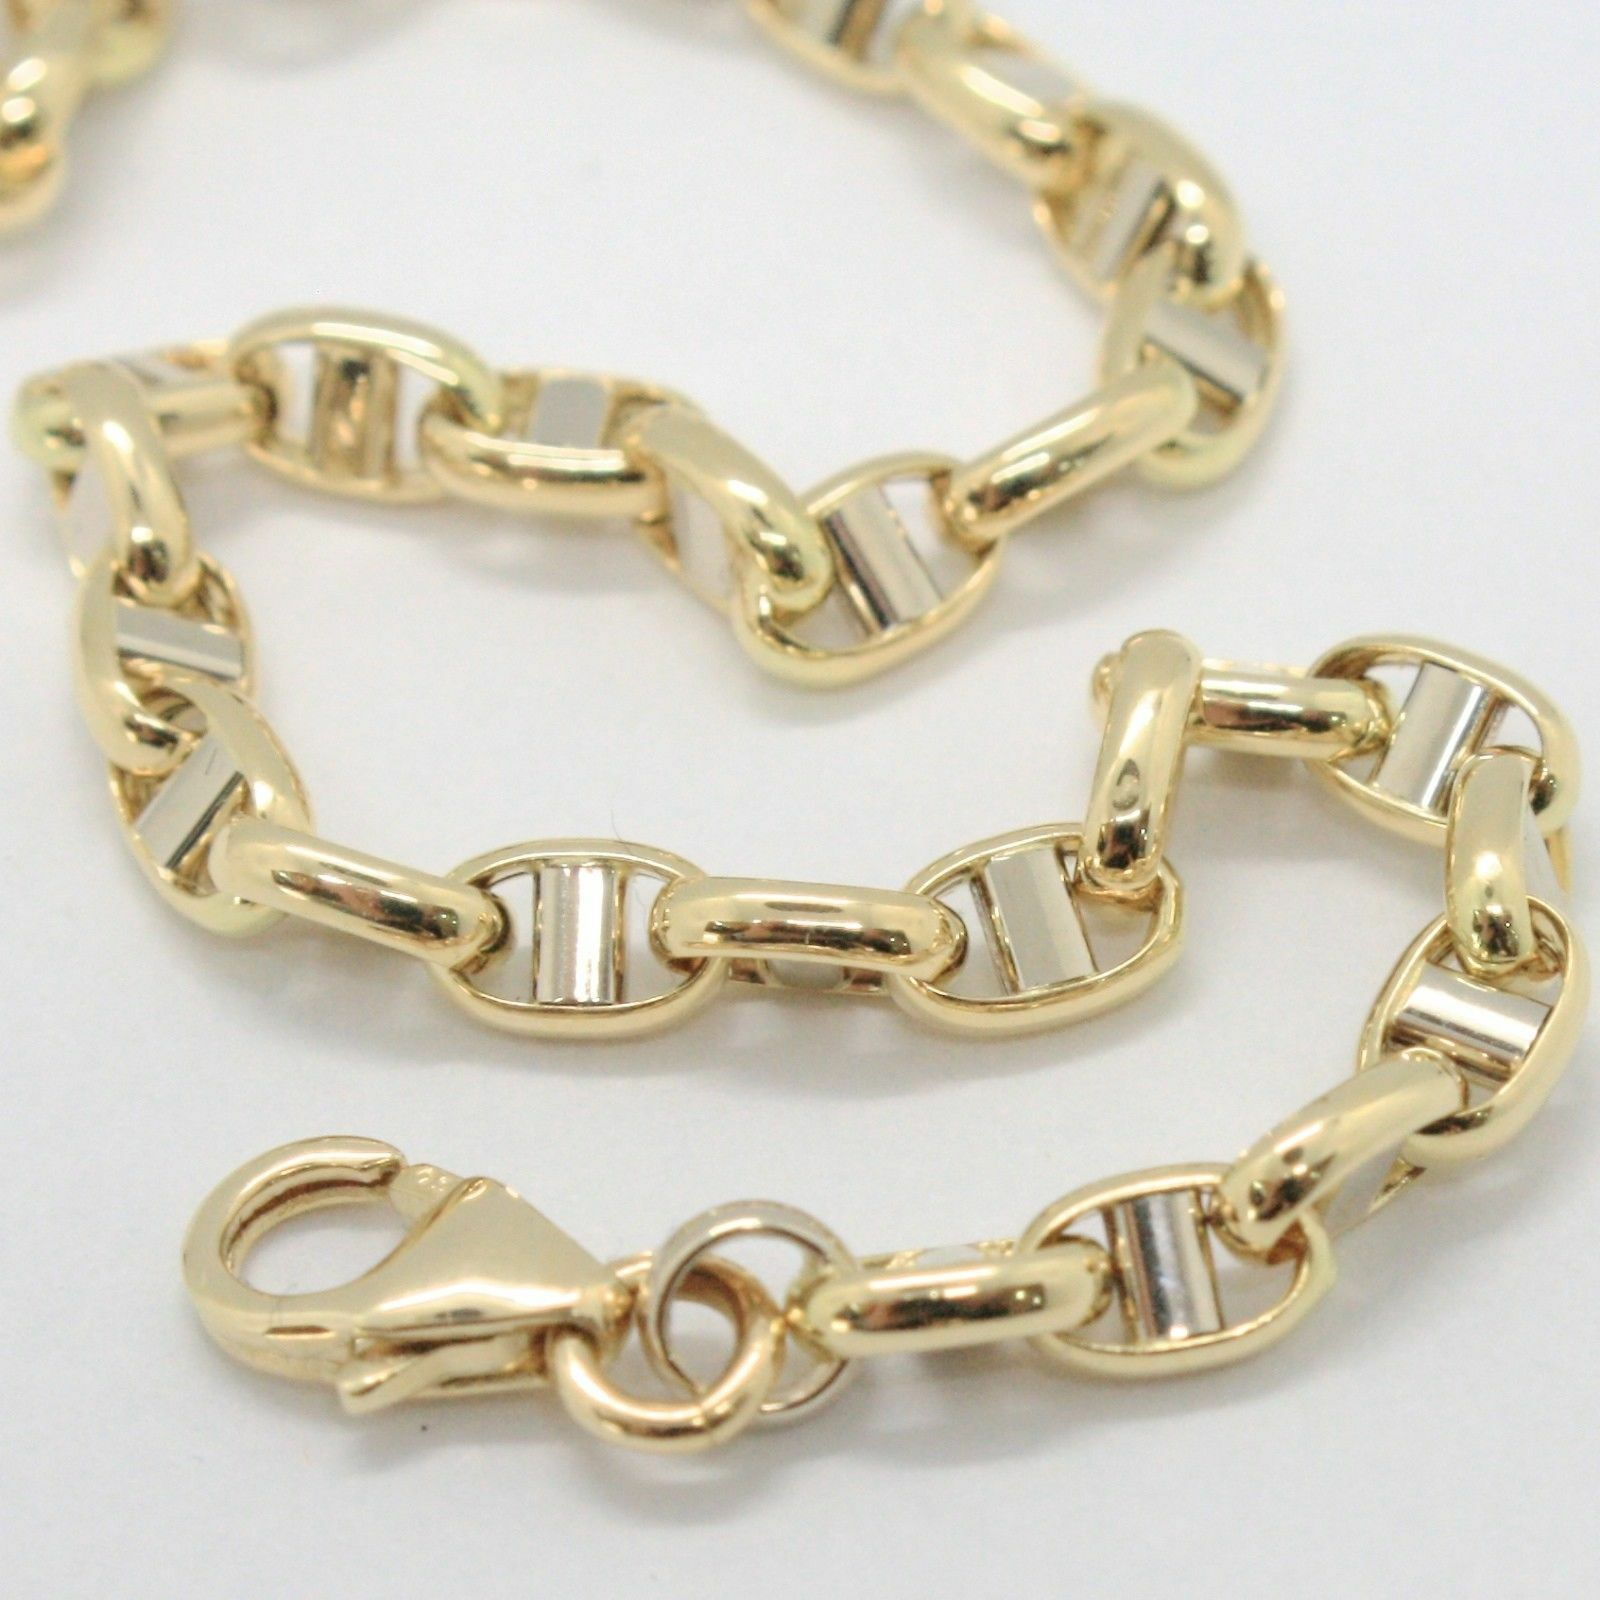 Bracelet in Yellow and White Gold 18K 750 Mesh Crosspiece Made in Italy